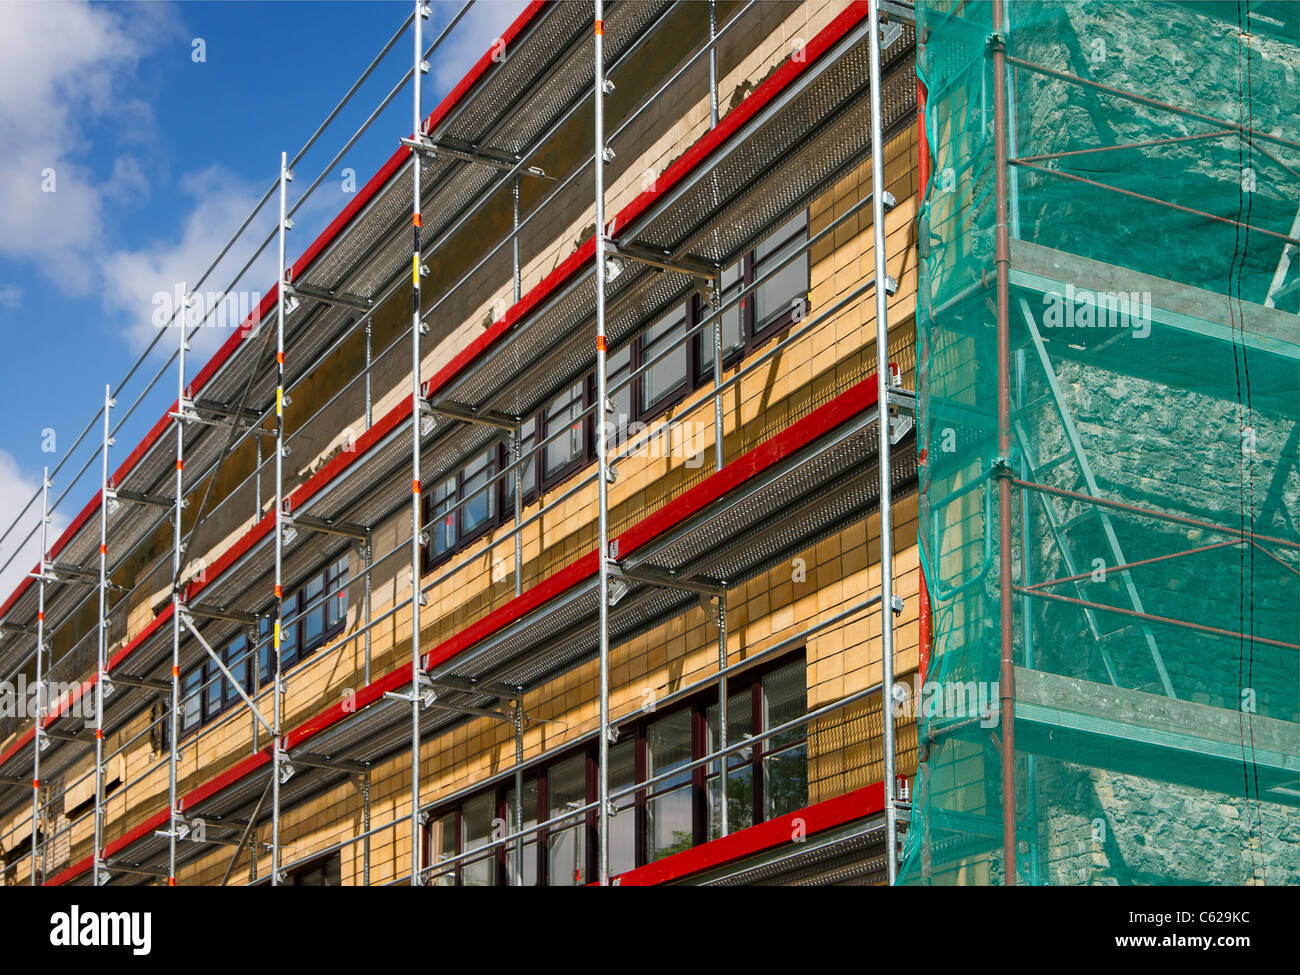 Corner view of a building with scaffolding enclosed in green safety fabric - Stock Image